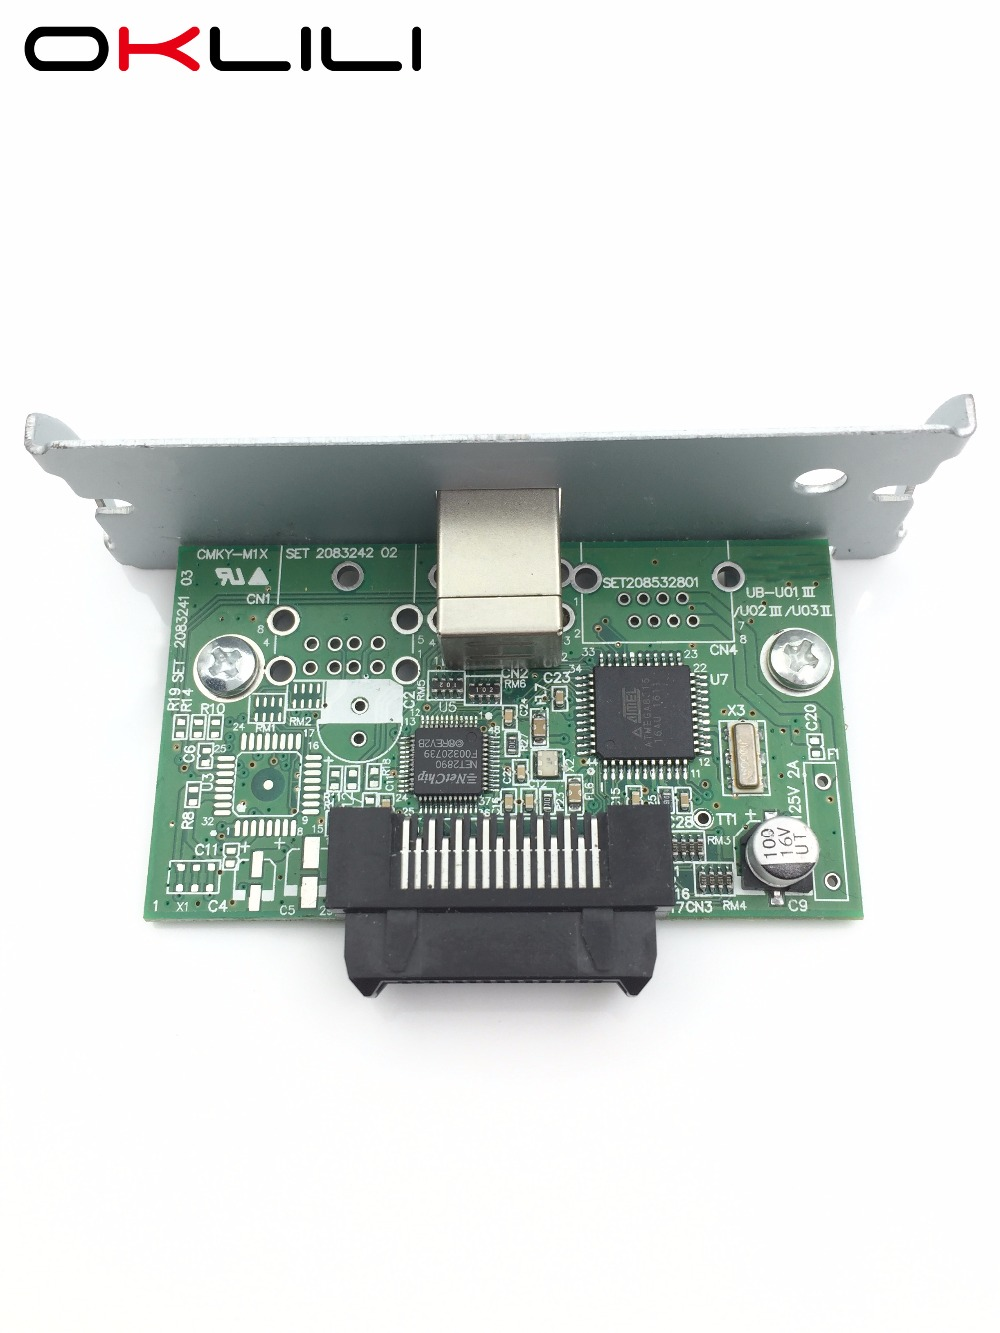 NEW C32C824131 M148E USB Port Interface Card for Epson TM-H5000II H6000IV J7000 J7100 J7500 J7600 L90 T70 T88IV T88V T90 U220 tm c3500 tm c3510 tm c3520 cartridge chip resetter for epson tm c3500 c3510 c3520 printers